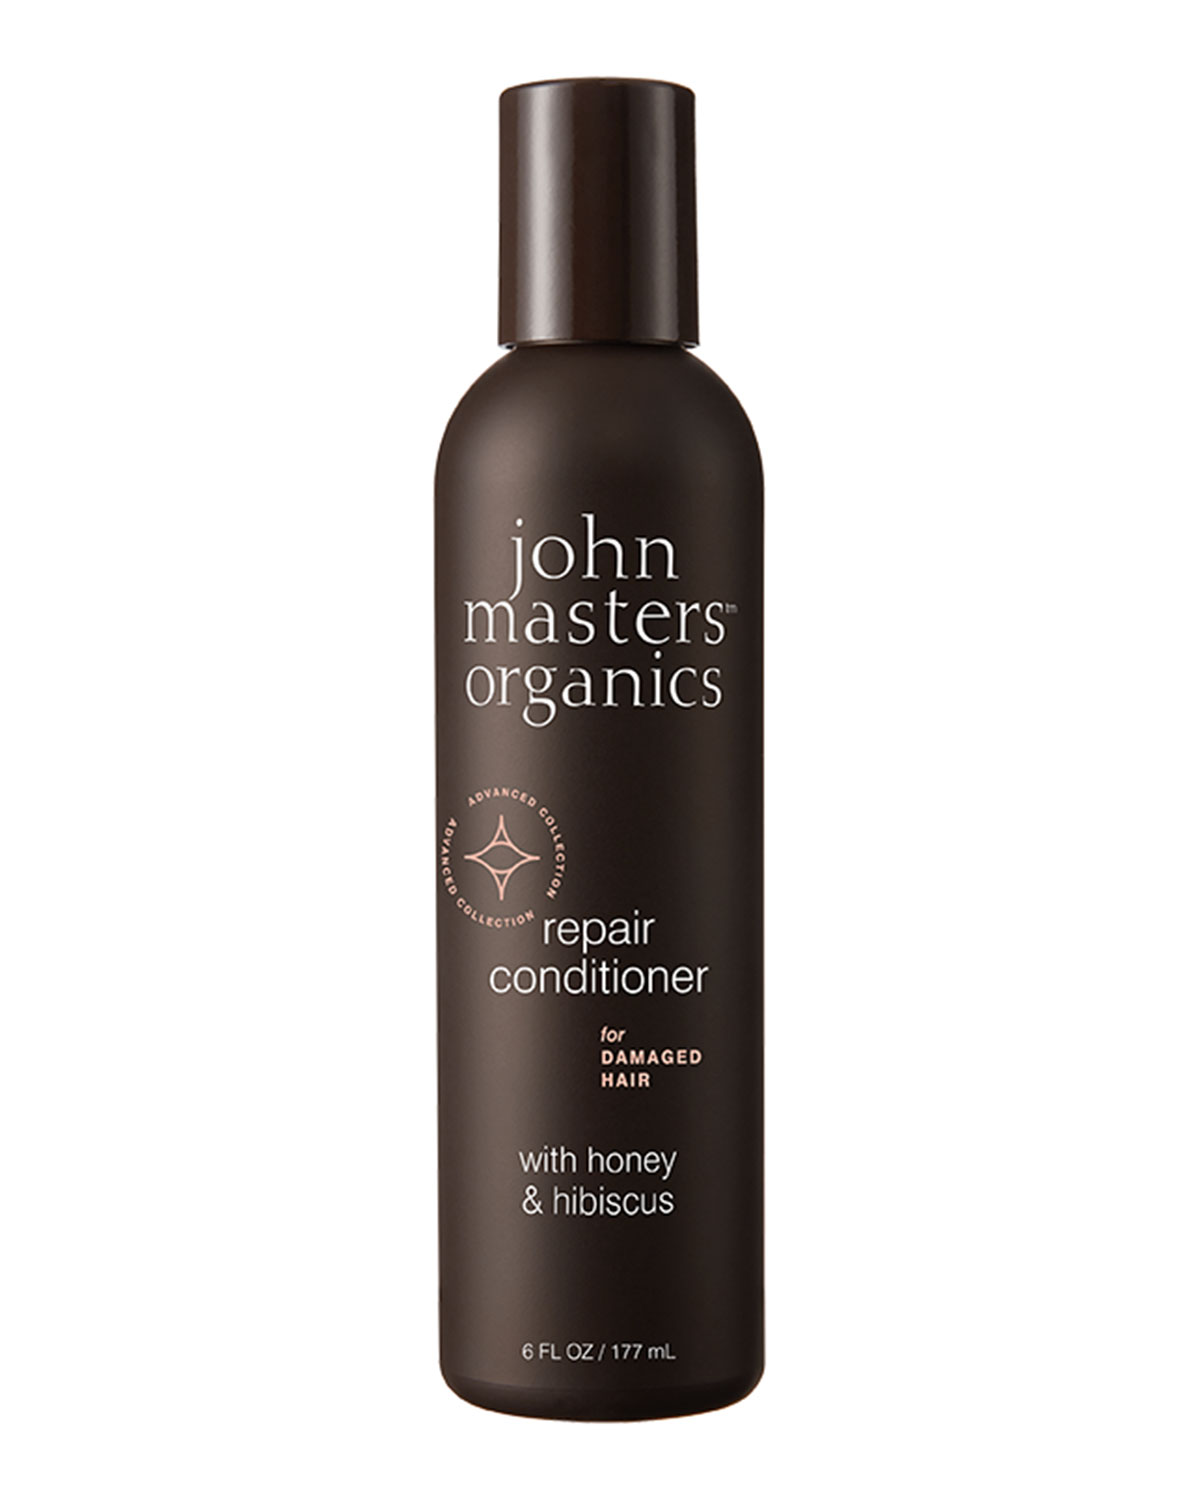 6 oz. Repair Conditioner for Damaged Hair